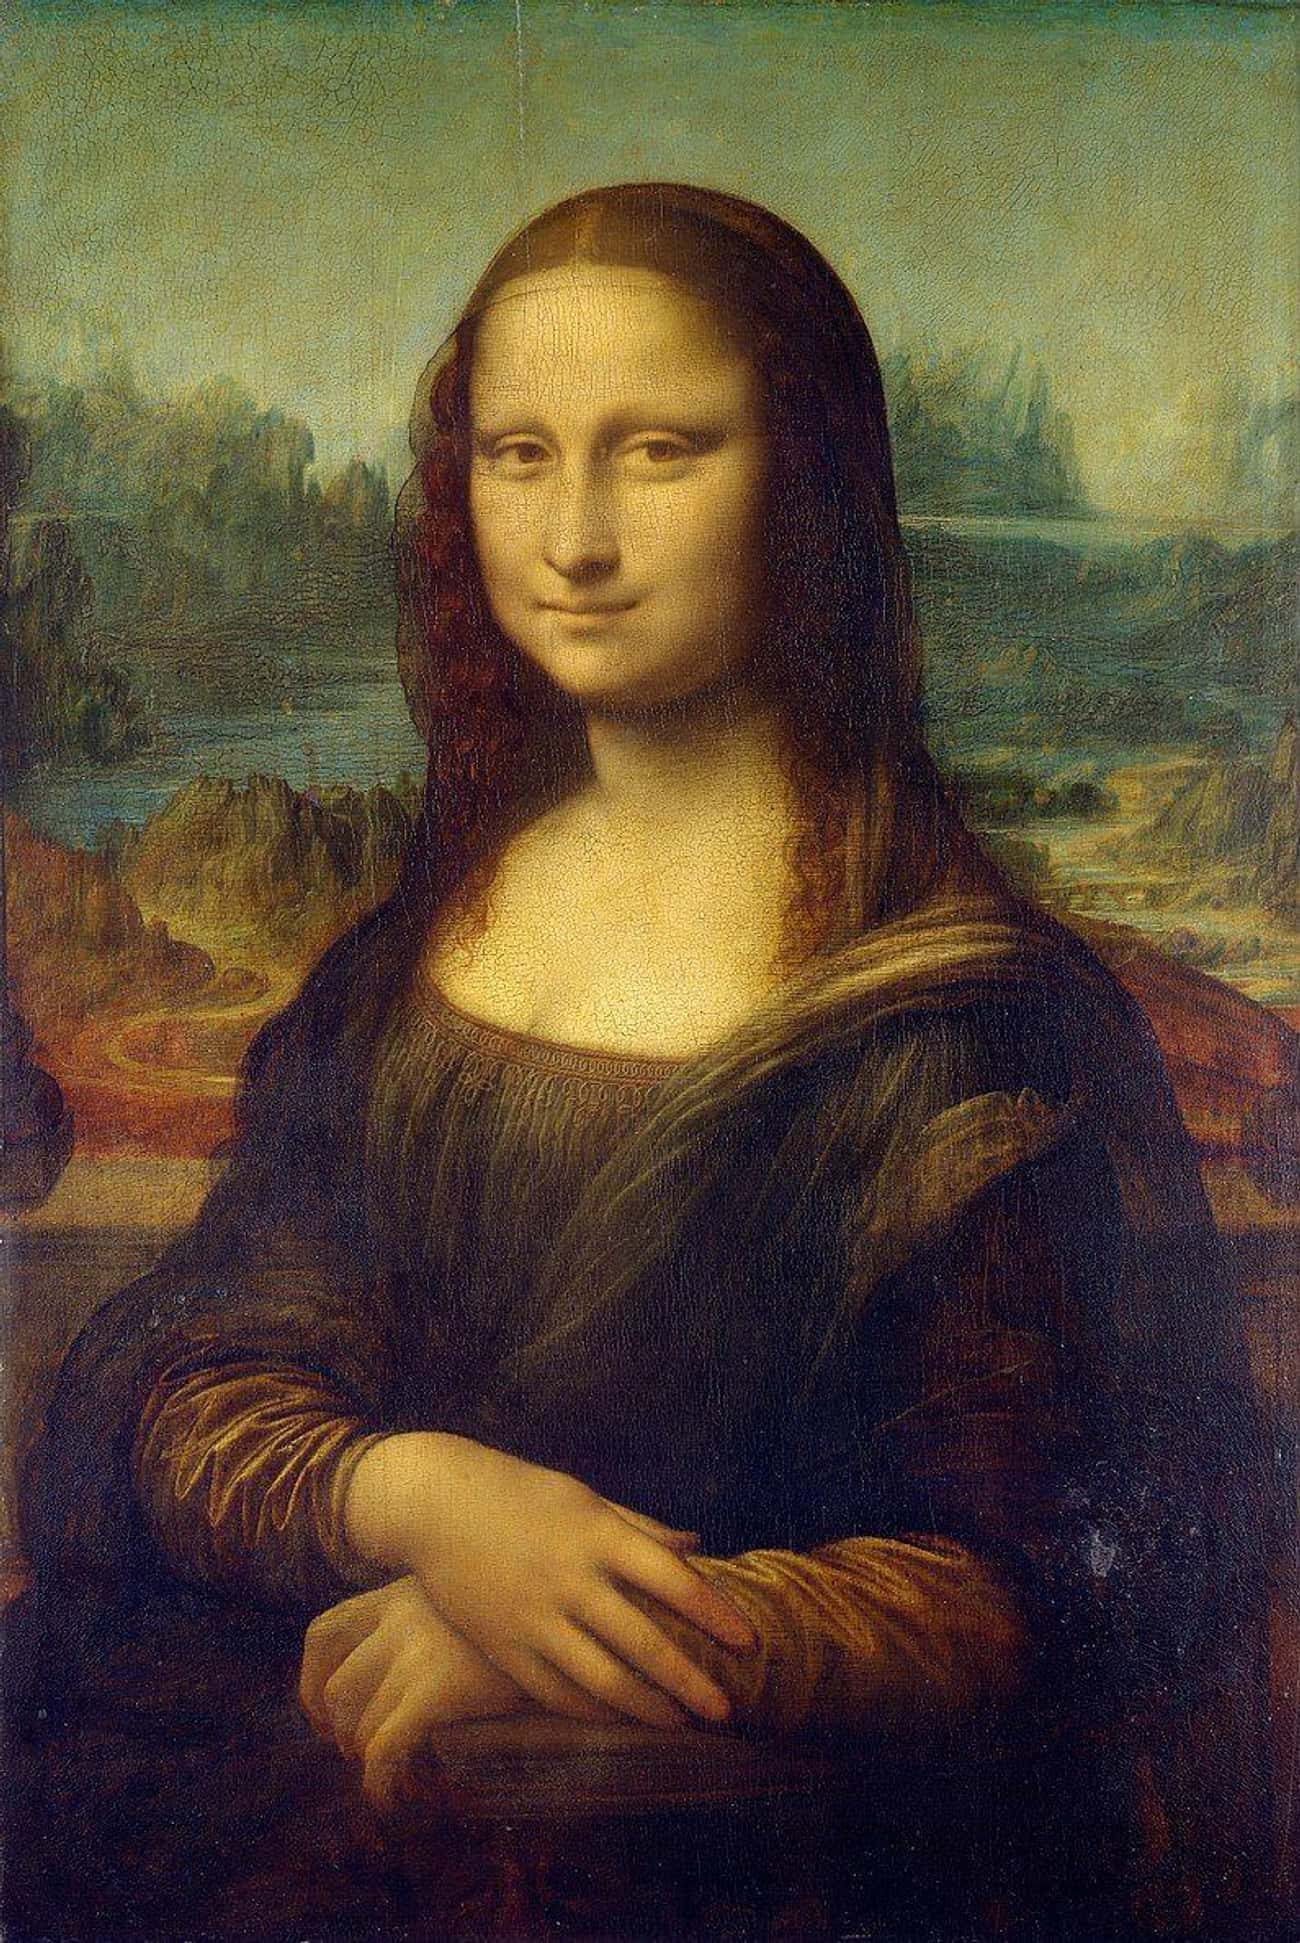 Michelangelo and da Vinci Were is listed (or ranked) 3 on the list Turns Out Michelangelo And Da Vinci Trafficked Dead Bodies For Their Art